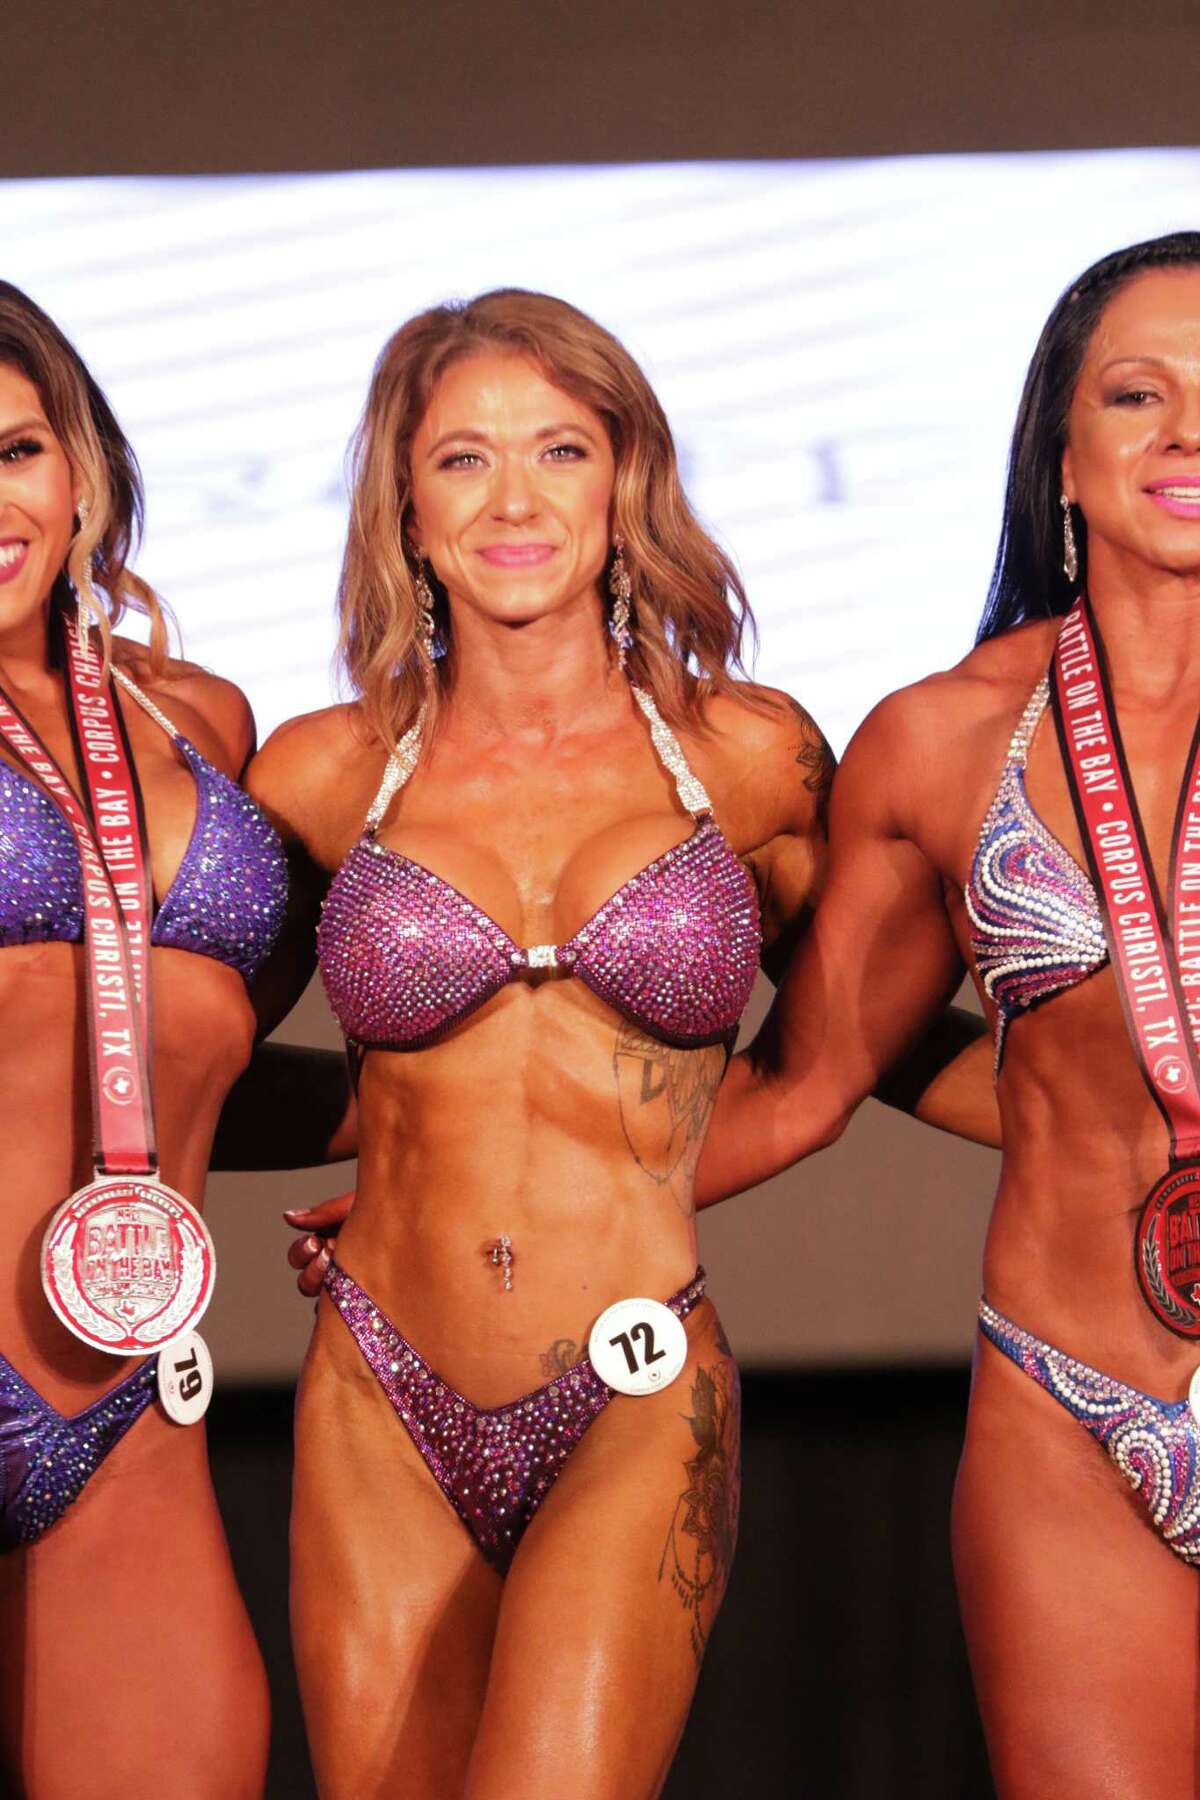 Ashley Tolson won gold cups inwomen?'s figure novice and open classic at the NPC Battle on the Bay.